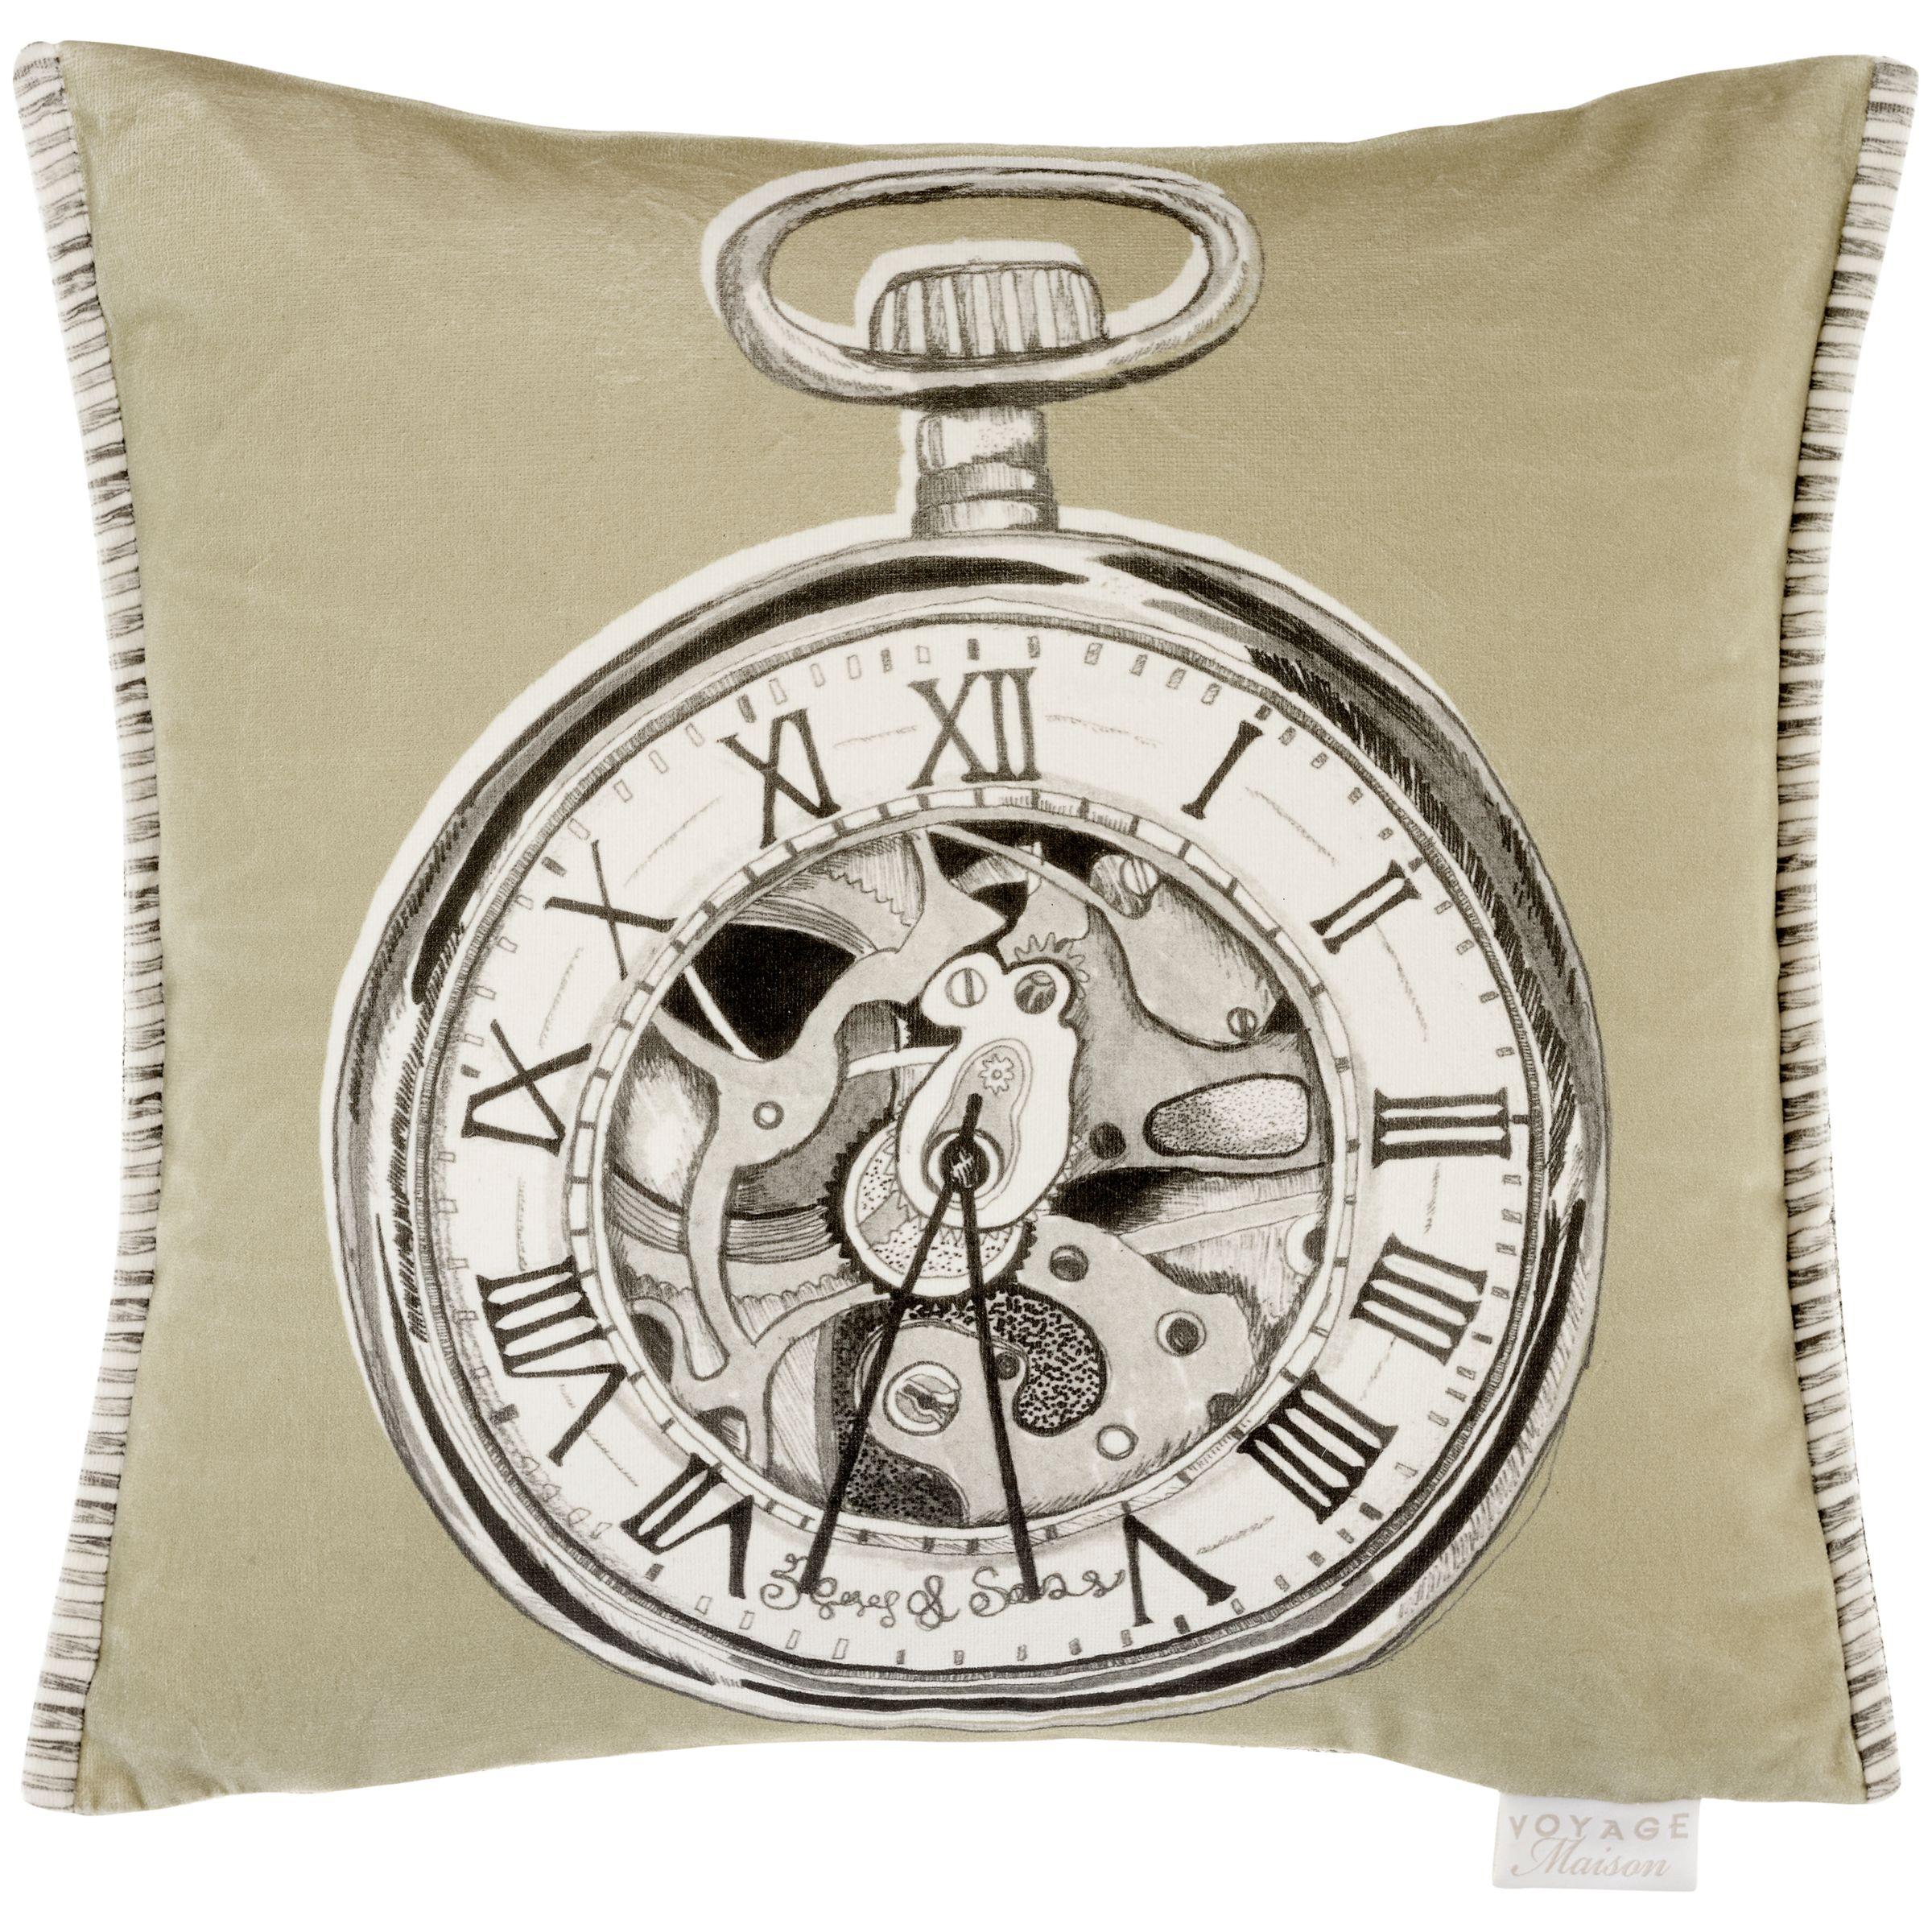 Voyage Voyage Pocket Watch Cushion